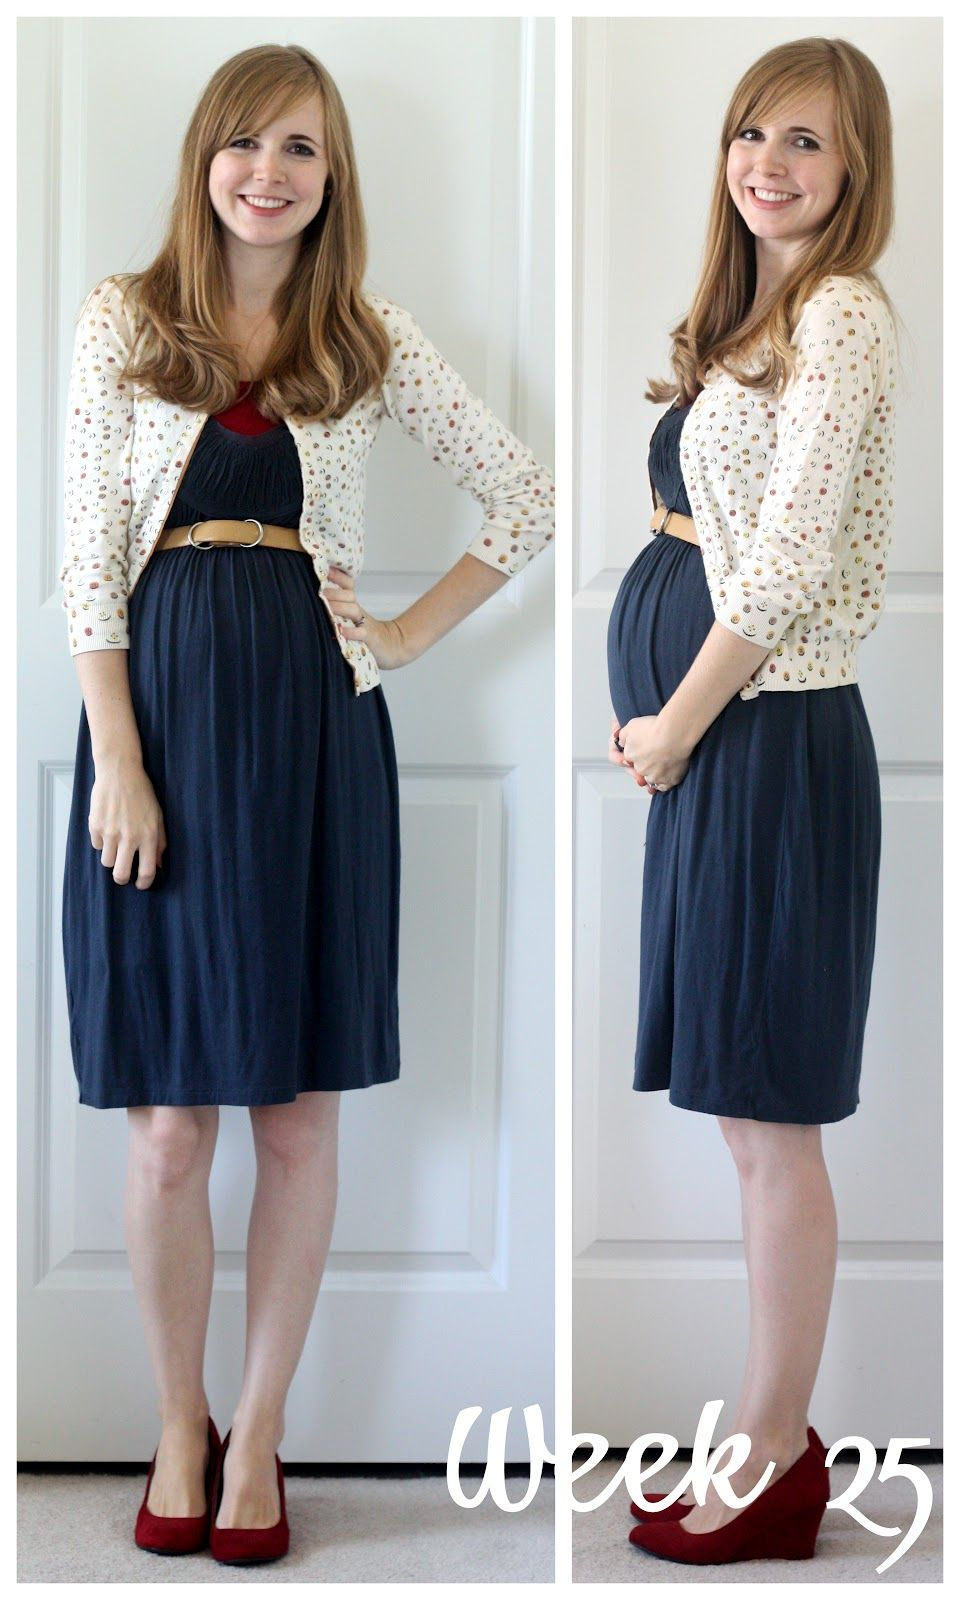 Cute Maternity Clothes! on Pinterest